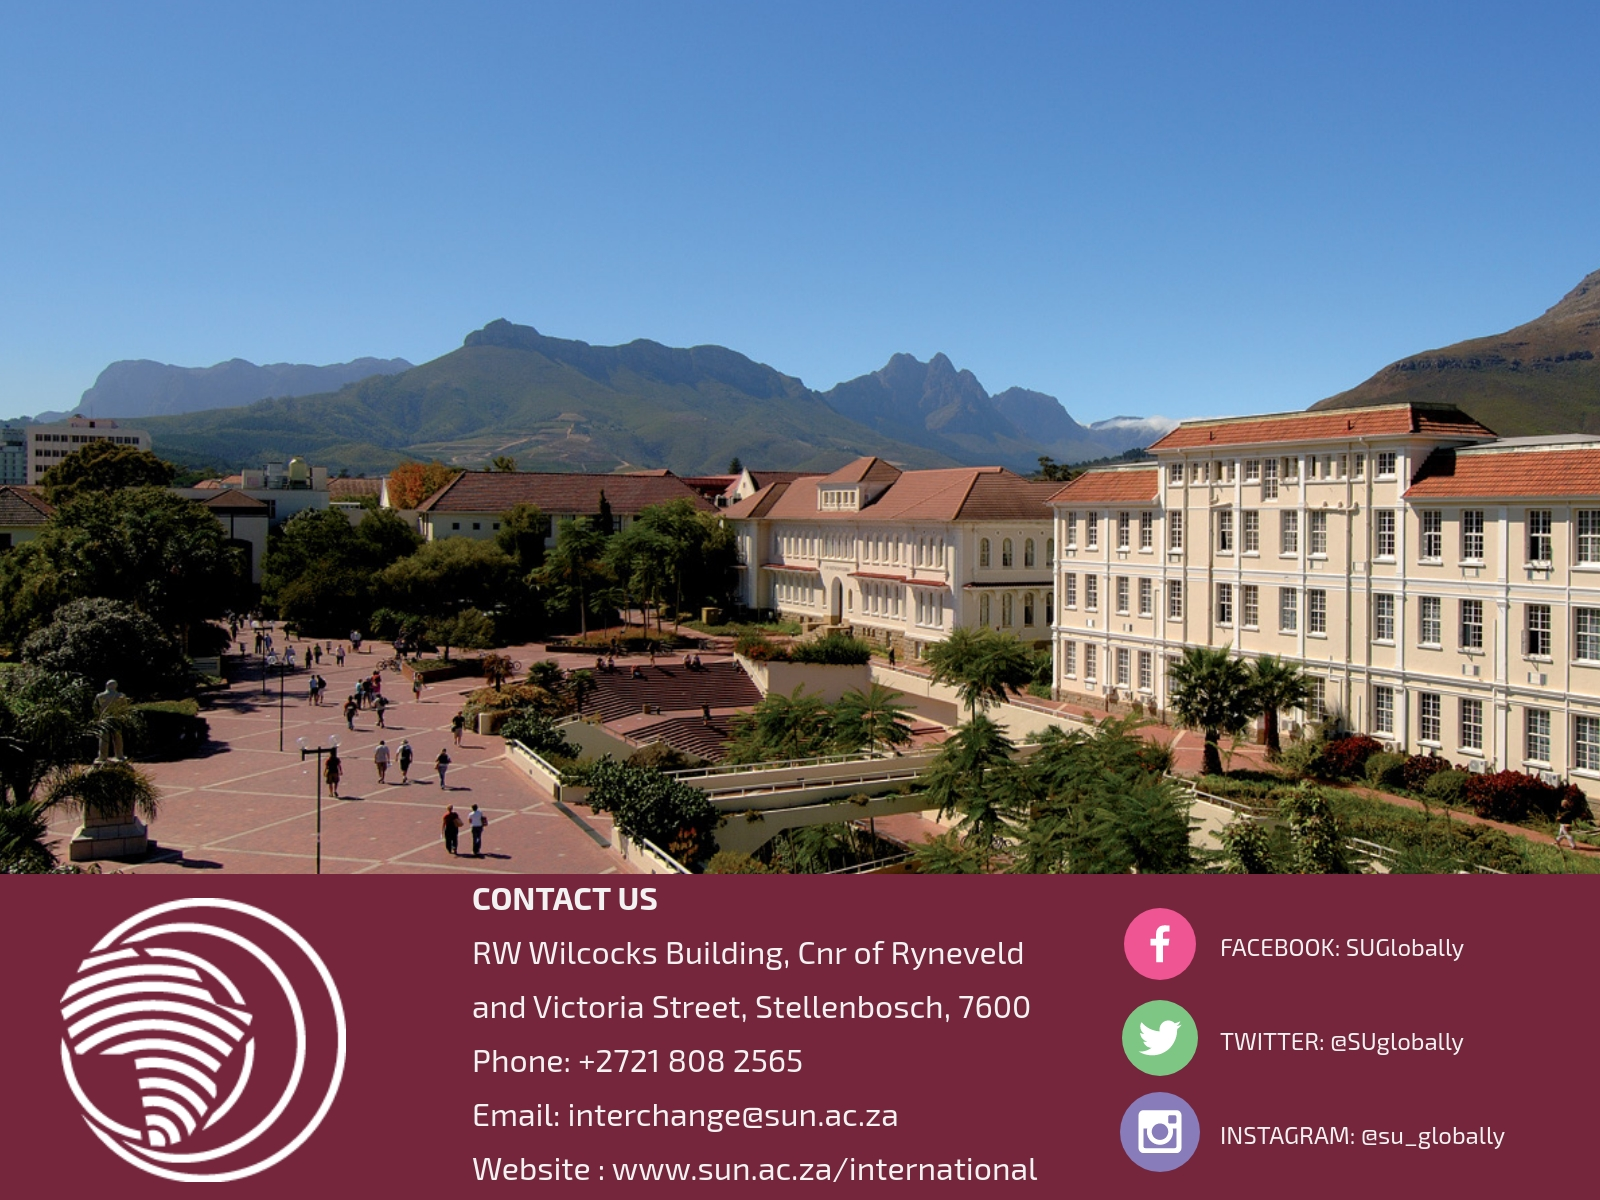 Aerial View of Stellenbosch Campus